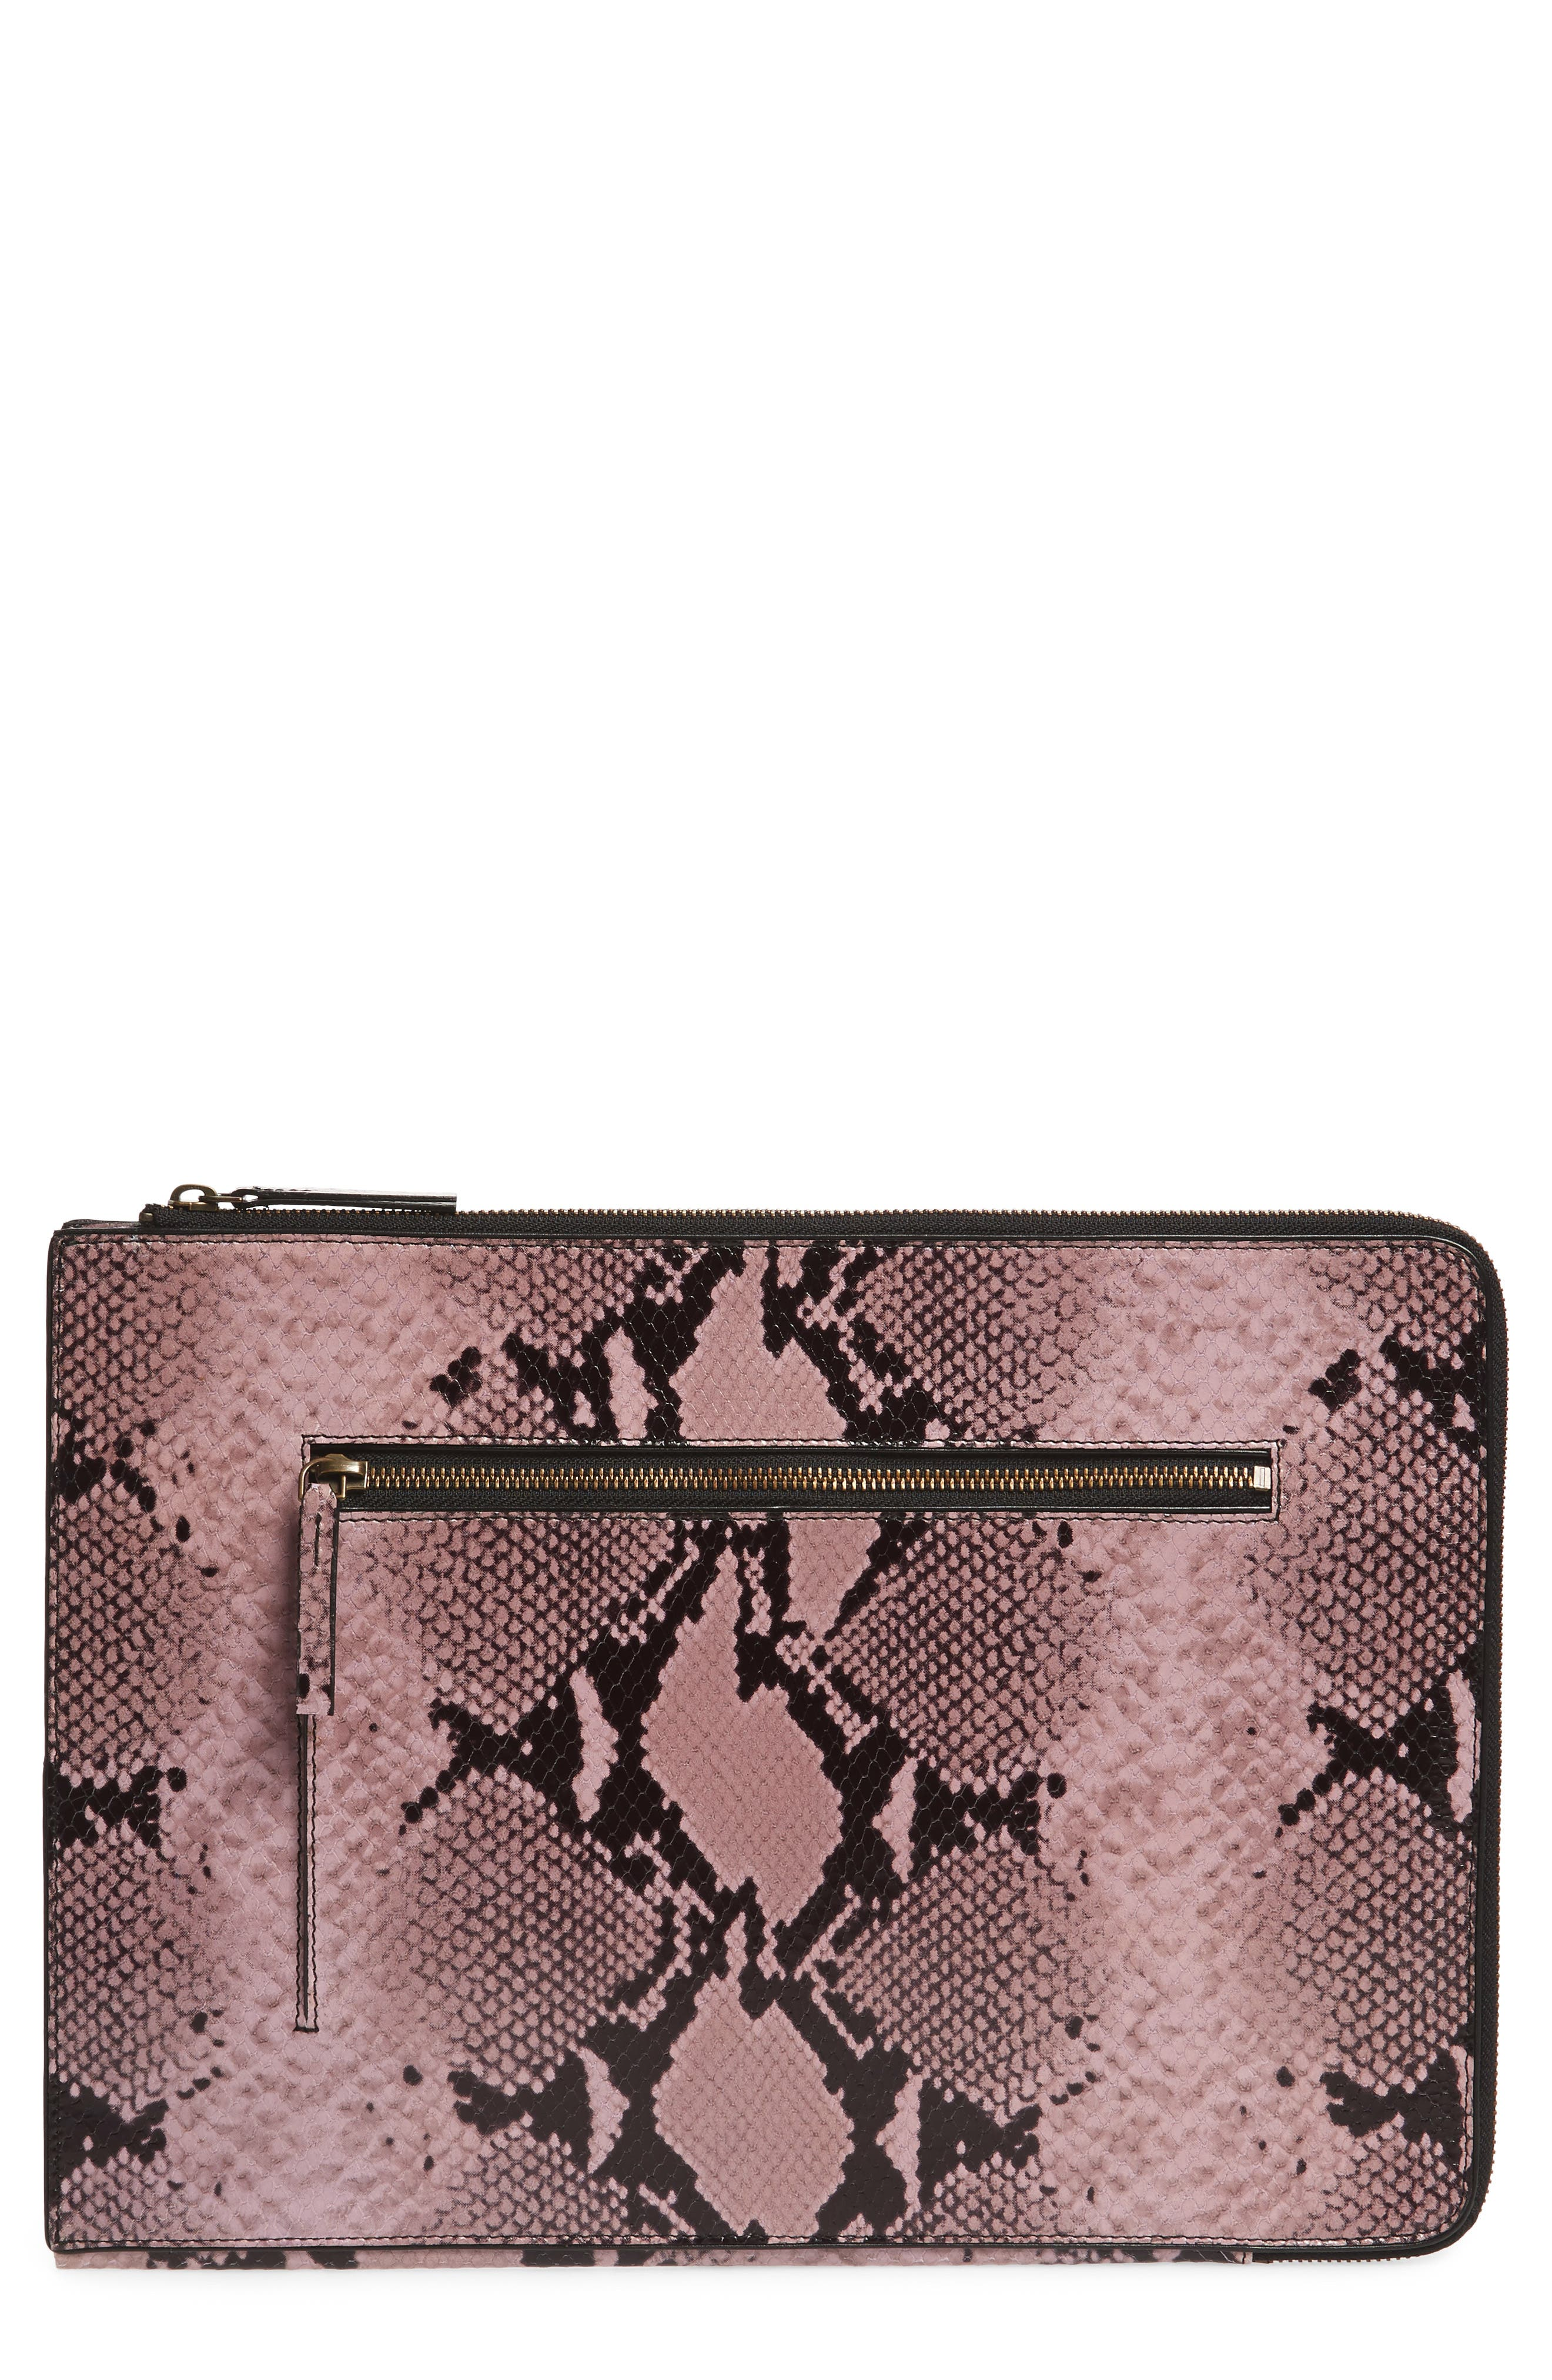 Leather Laptop Sleeve,                             Main thumbnail 1, color,                             Lilac